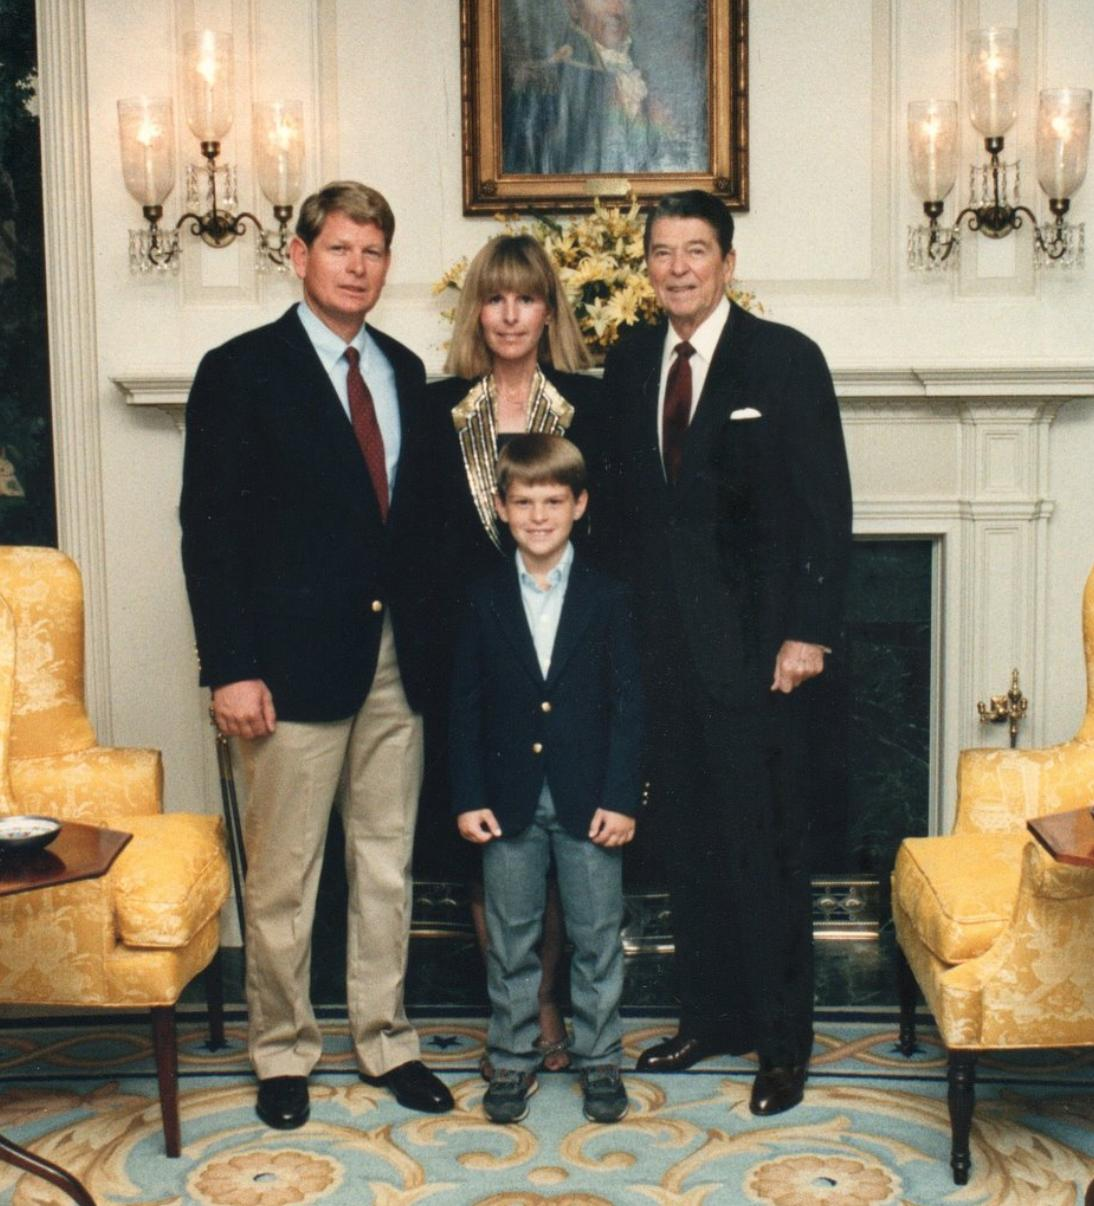 doug_herthel_with_wife_sue_and_son_mark_and_president_ronald_reagan_at_the_western_white_house._photo_courtesy_of_the_herthel_family.jpg